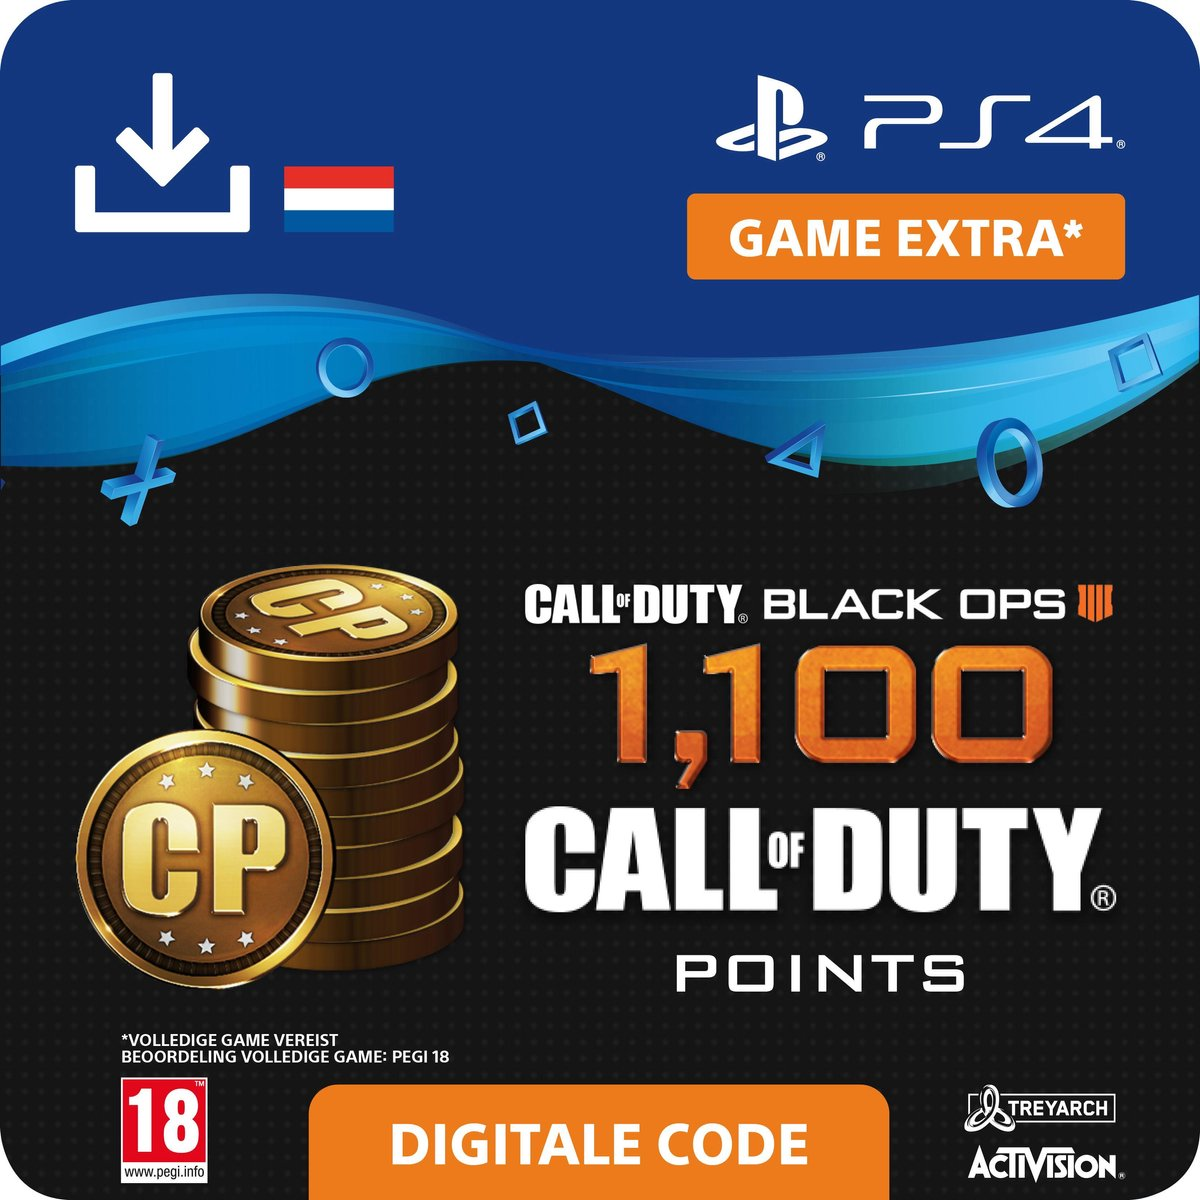 Call of Duty Black Ops 4 - digitale valuta - 1100 Call of Duty Points - NL - PS4 download